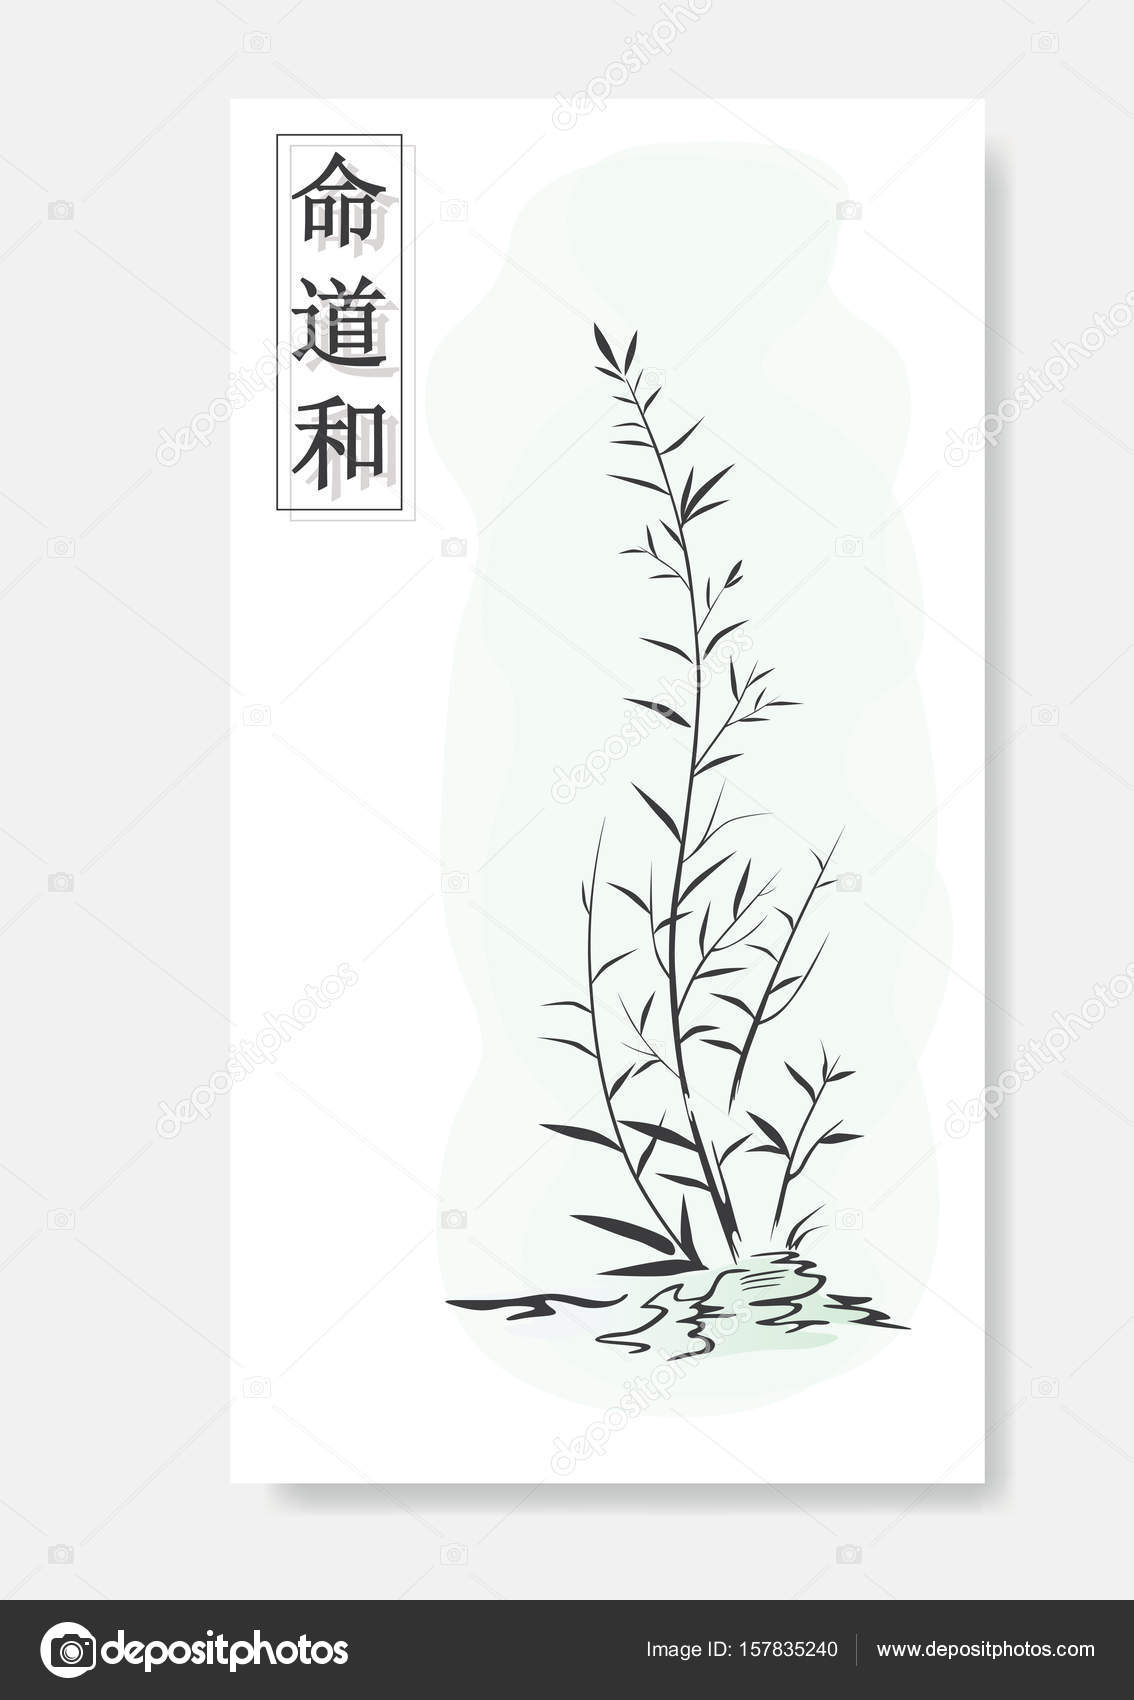 Postcard Flyer Template With A Flower In Japanese Style Stock - Postcard flyer template